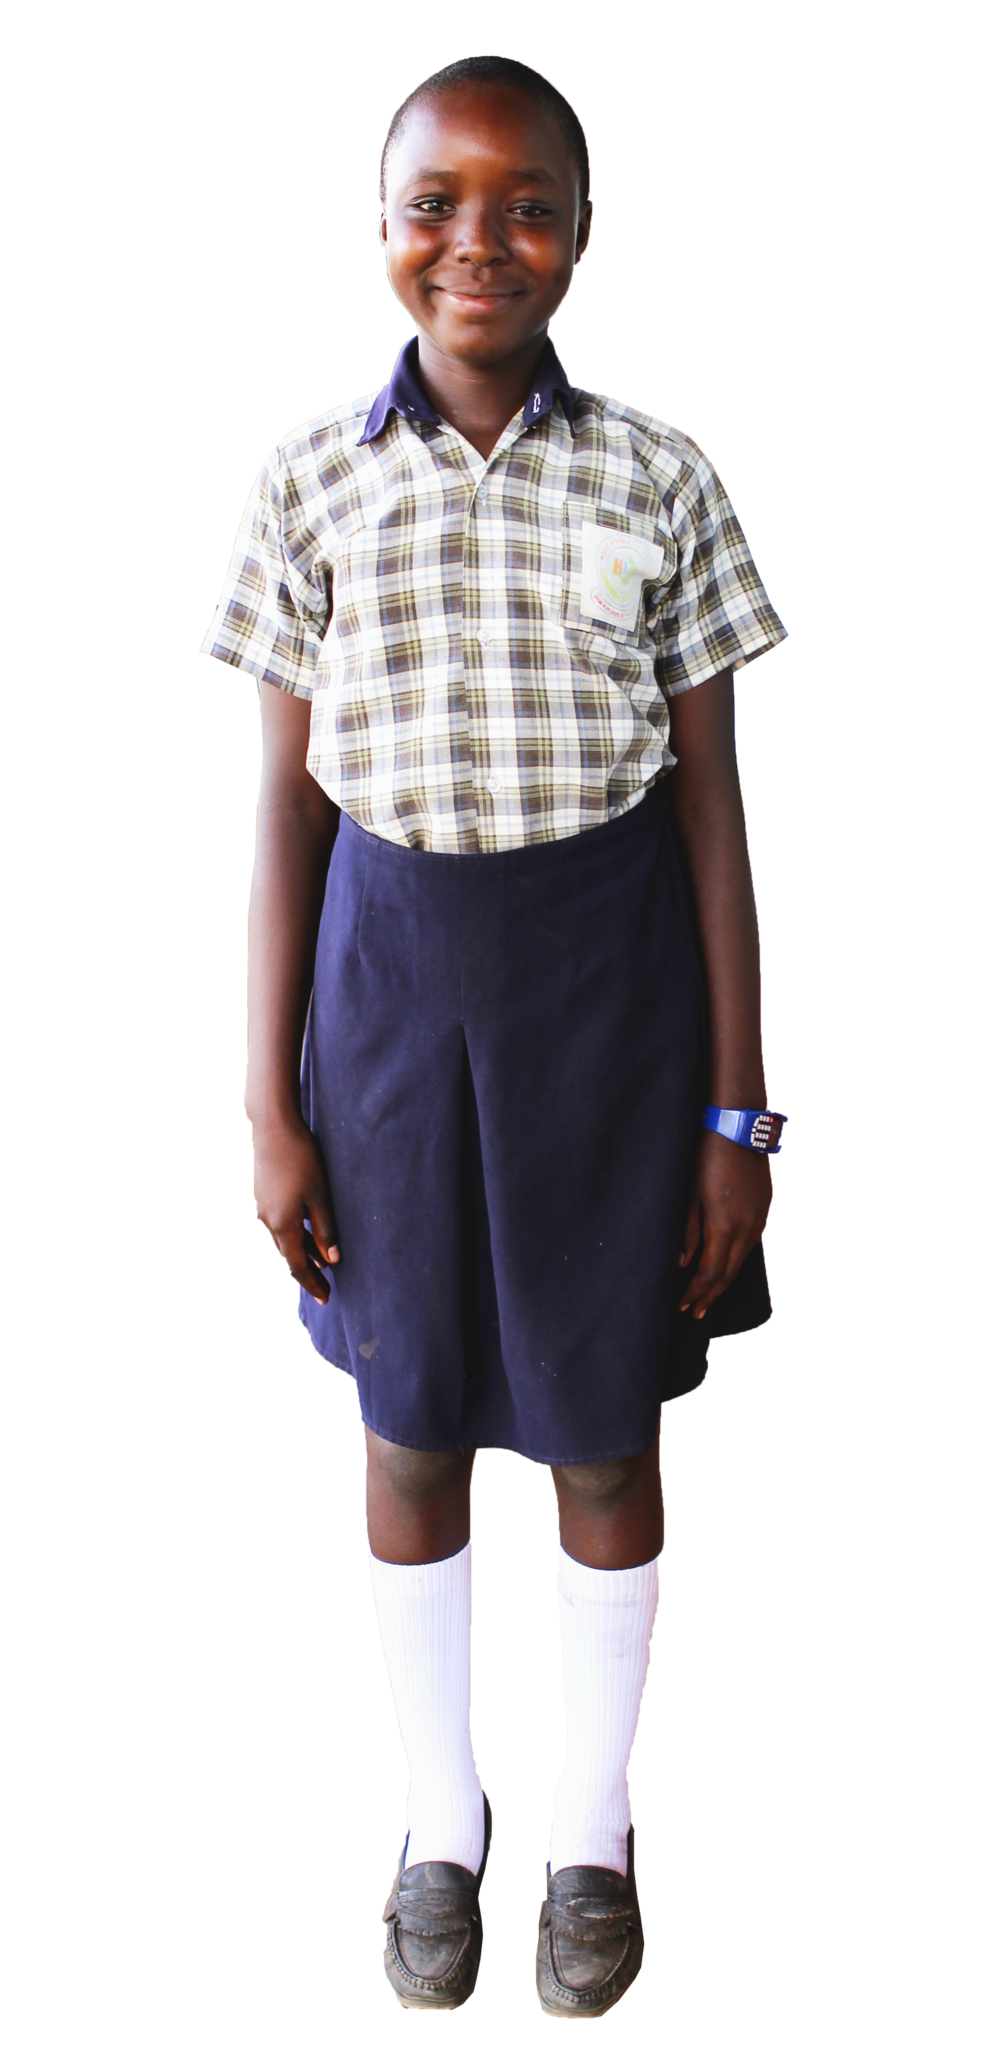 School Uniforms: $22  - Just $22 USD can purchase a student's uniform set. A uniform set includes: formal uniform attire, PE clothes, a sweater, and socks.